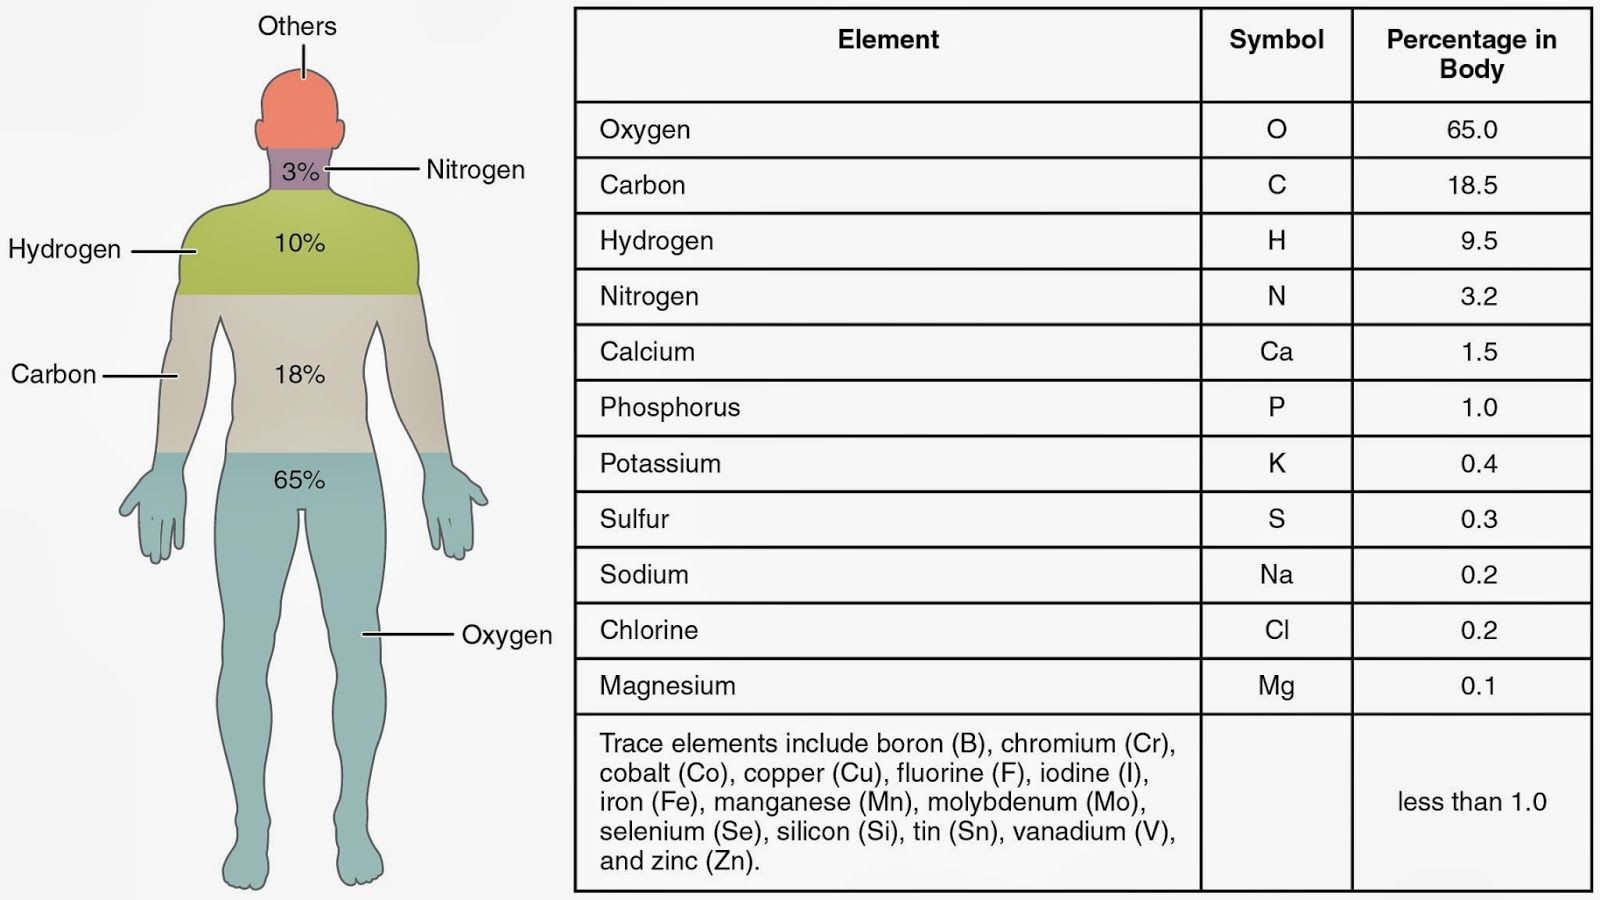 Elements In The Human Body Worksheet Human Body Anatomy And Physiology Particles Of Matter